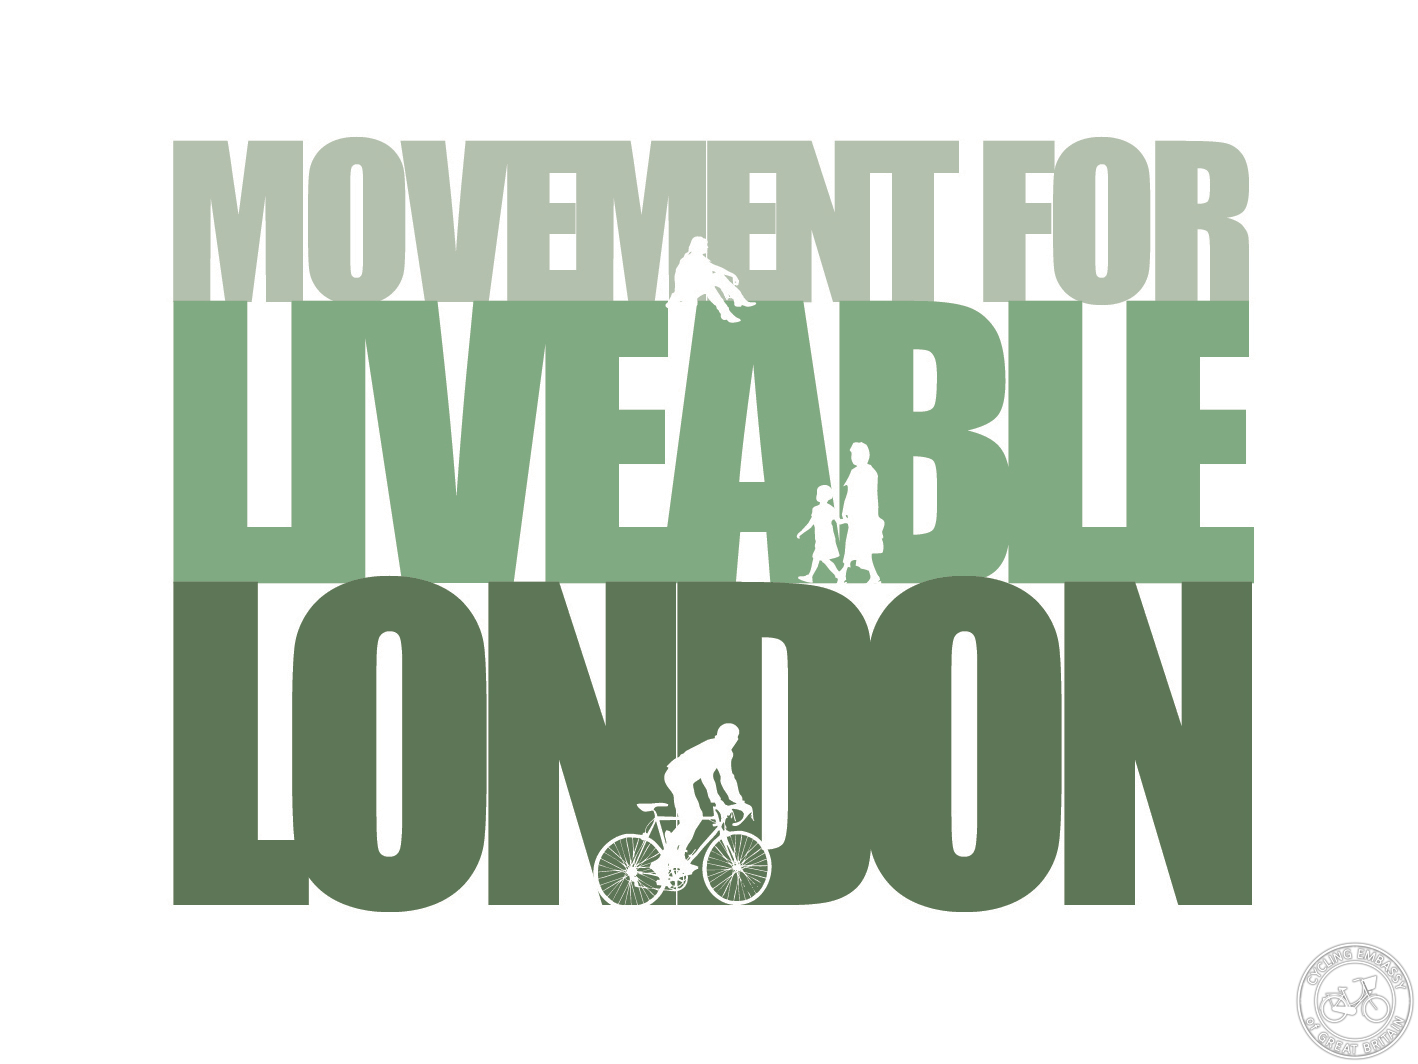 Movement for Liveable London logo